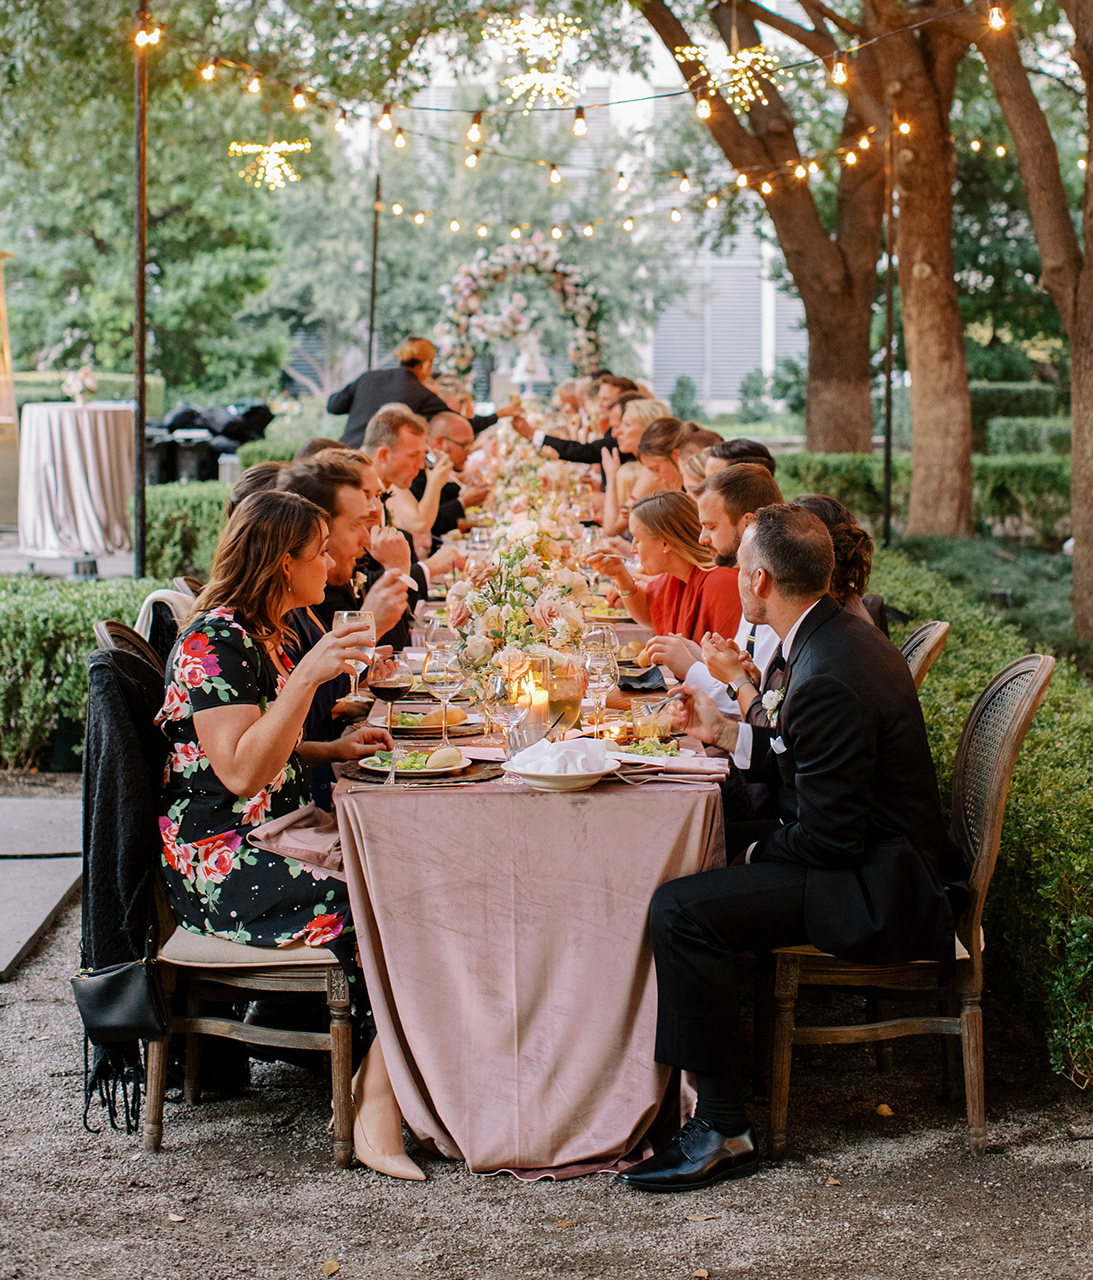 wedding reception family-style dinner outdoors